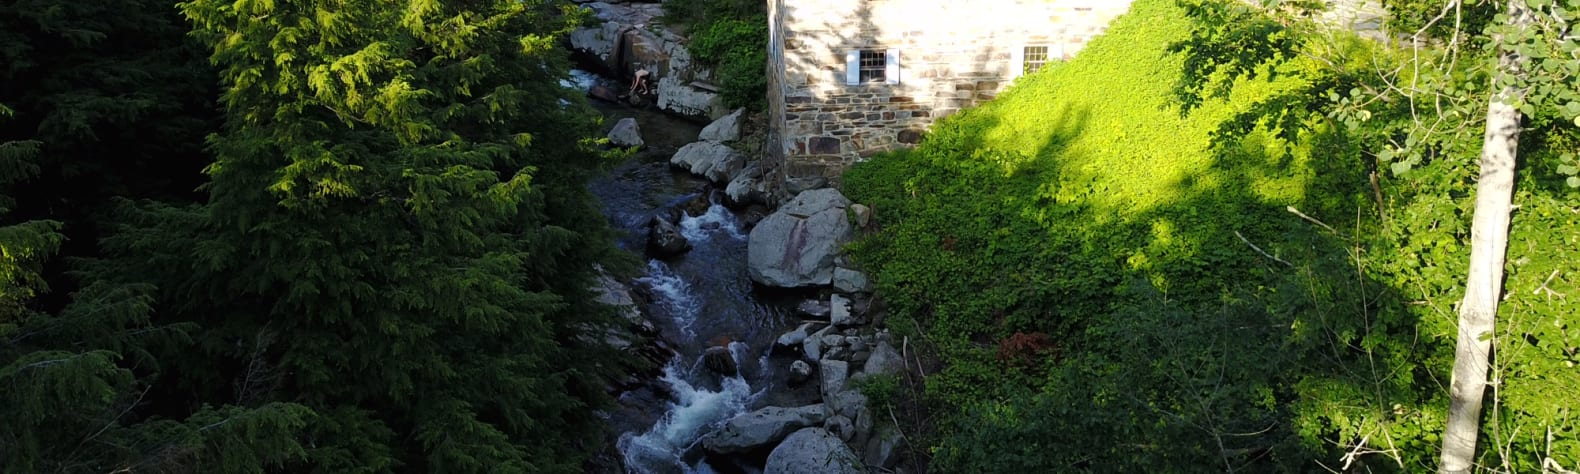 Historic Mill On a River Gorge